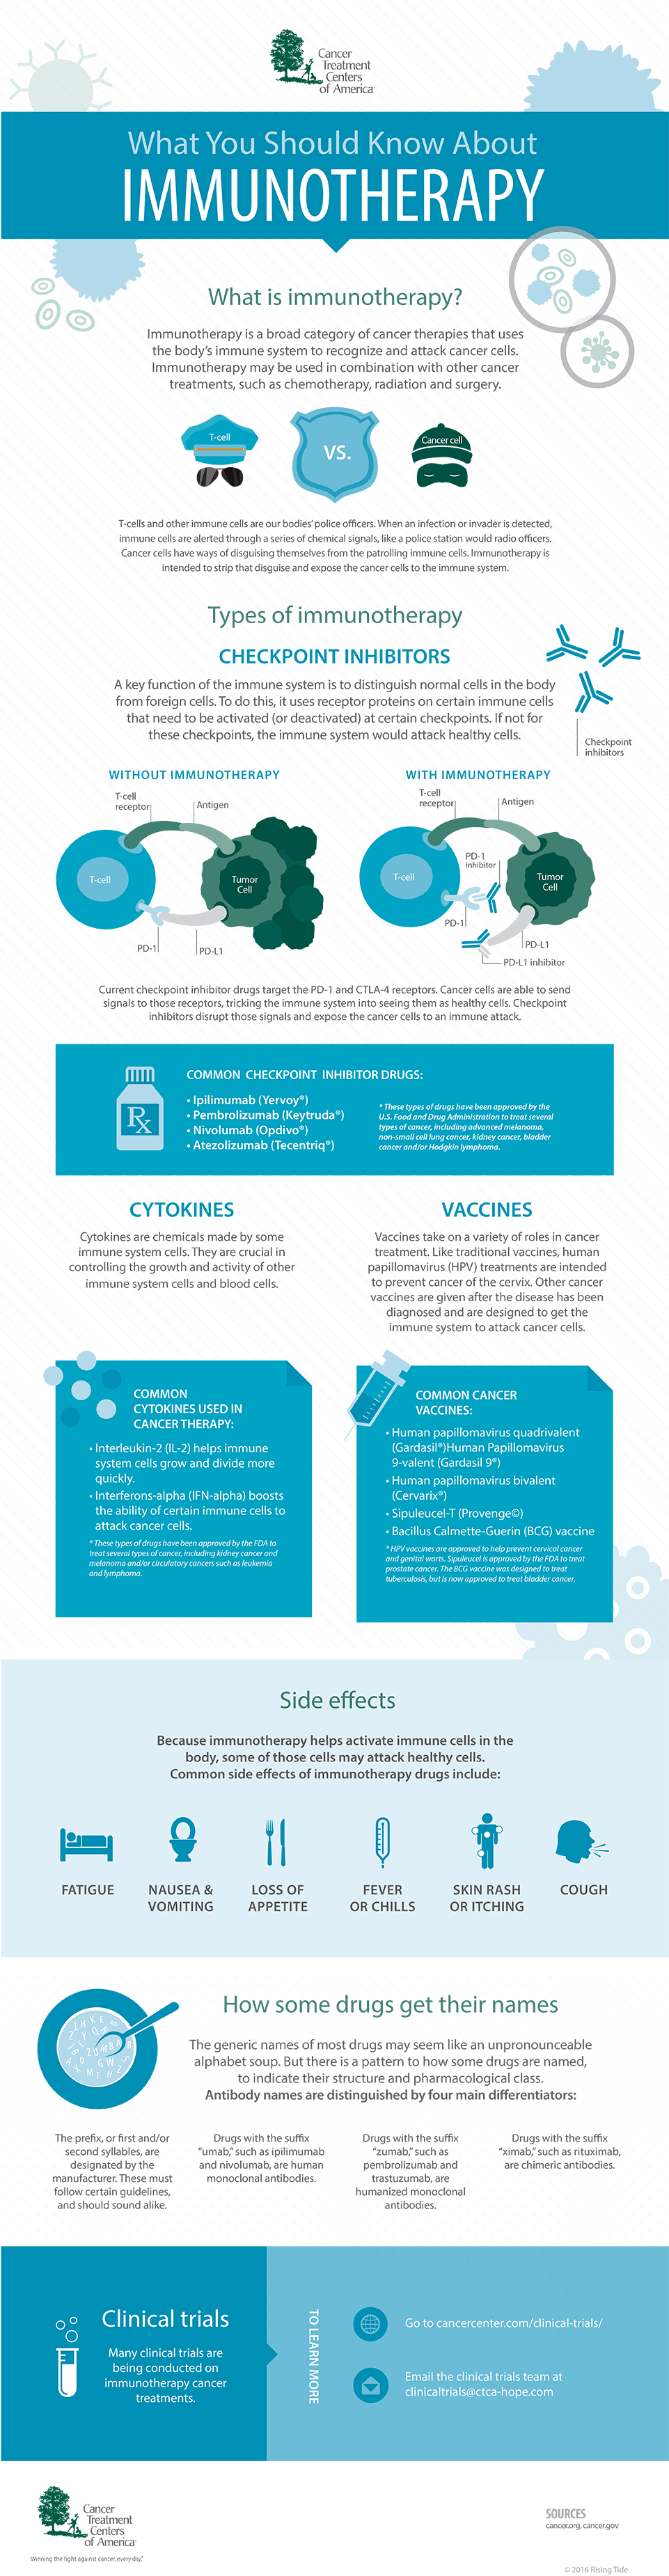 Everything You Need To Know About Immunotherapy - Infographic